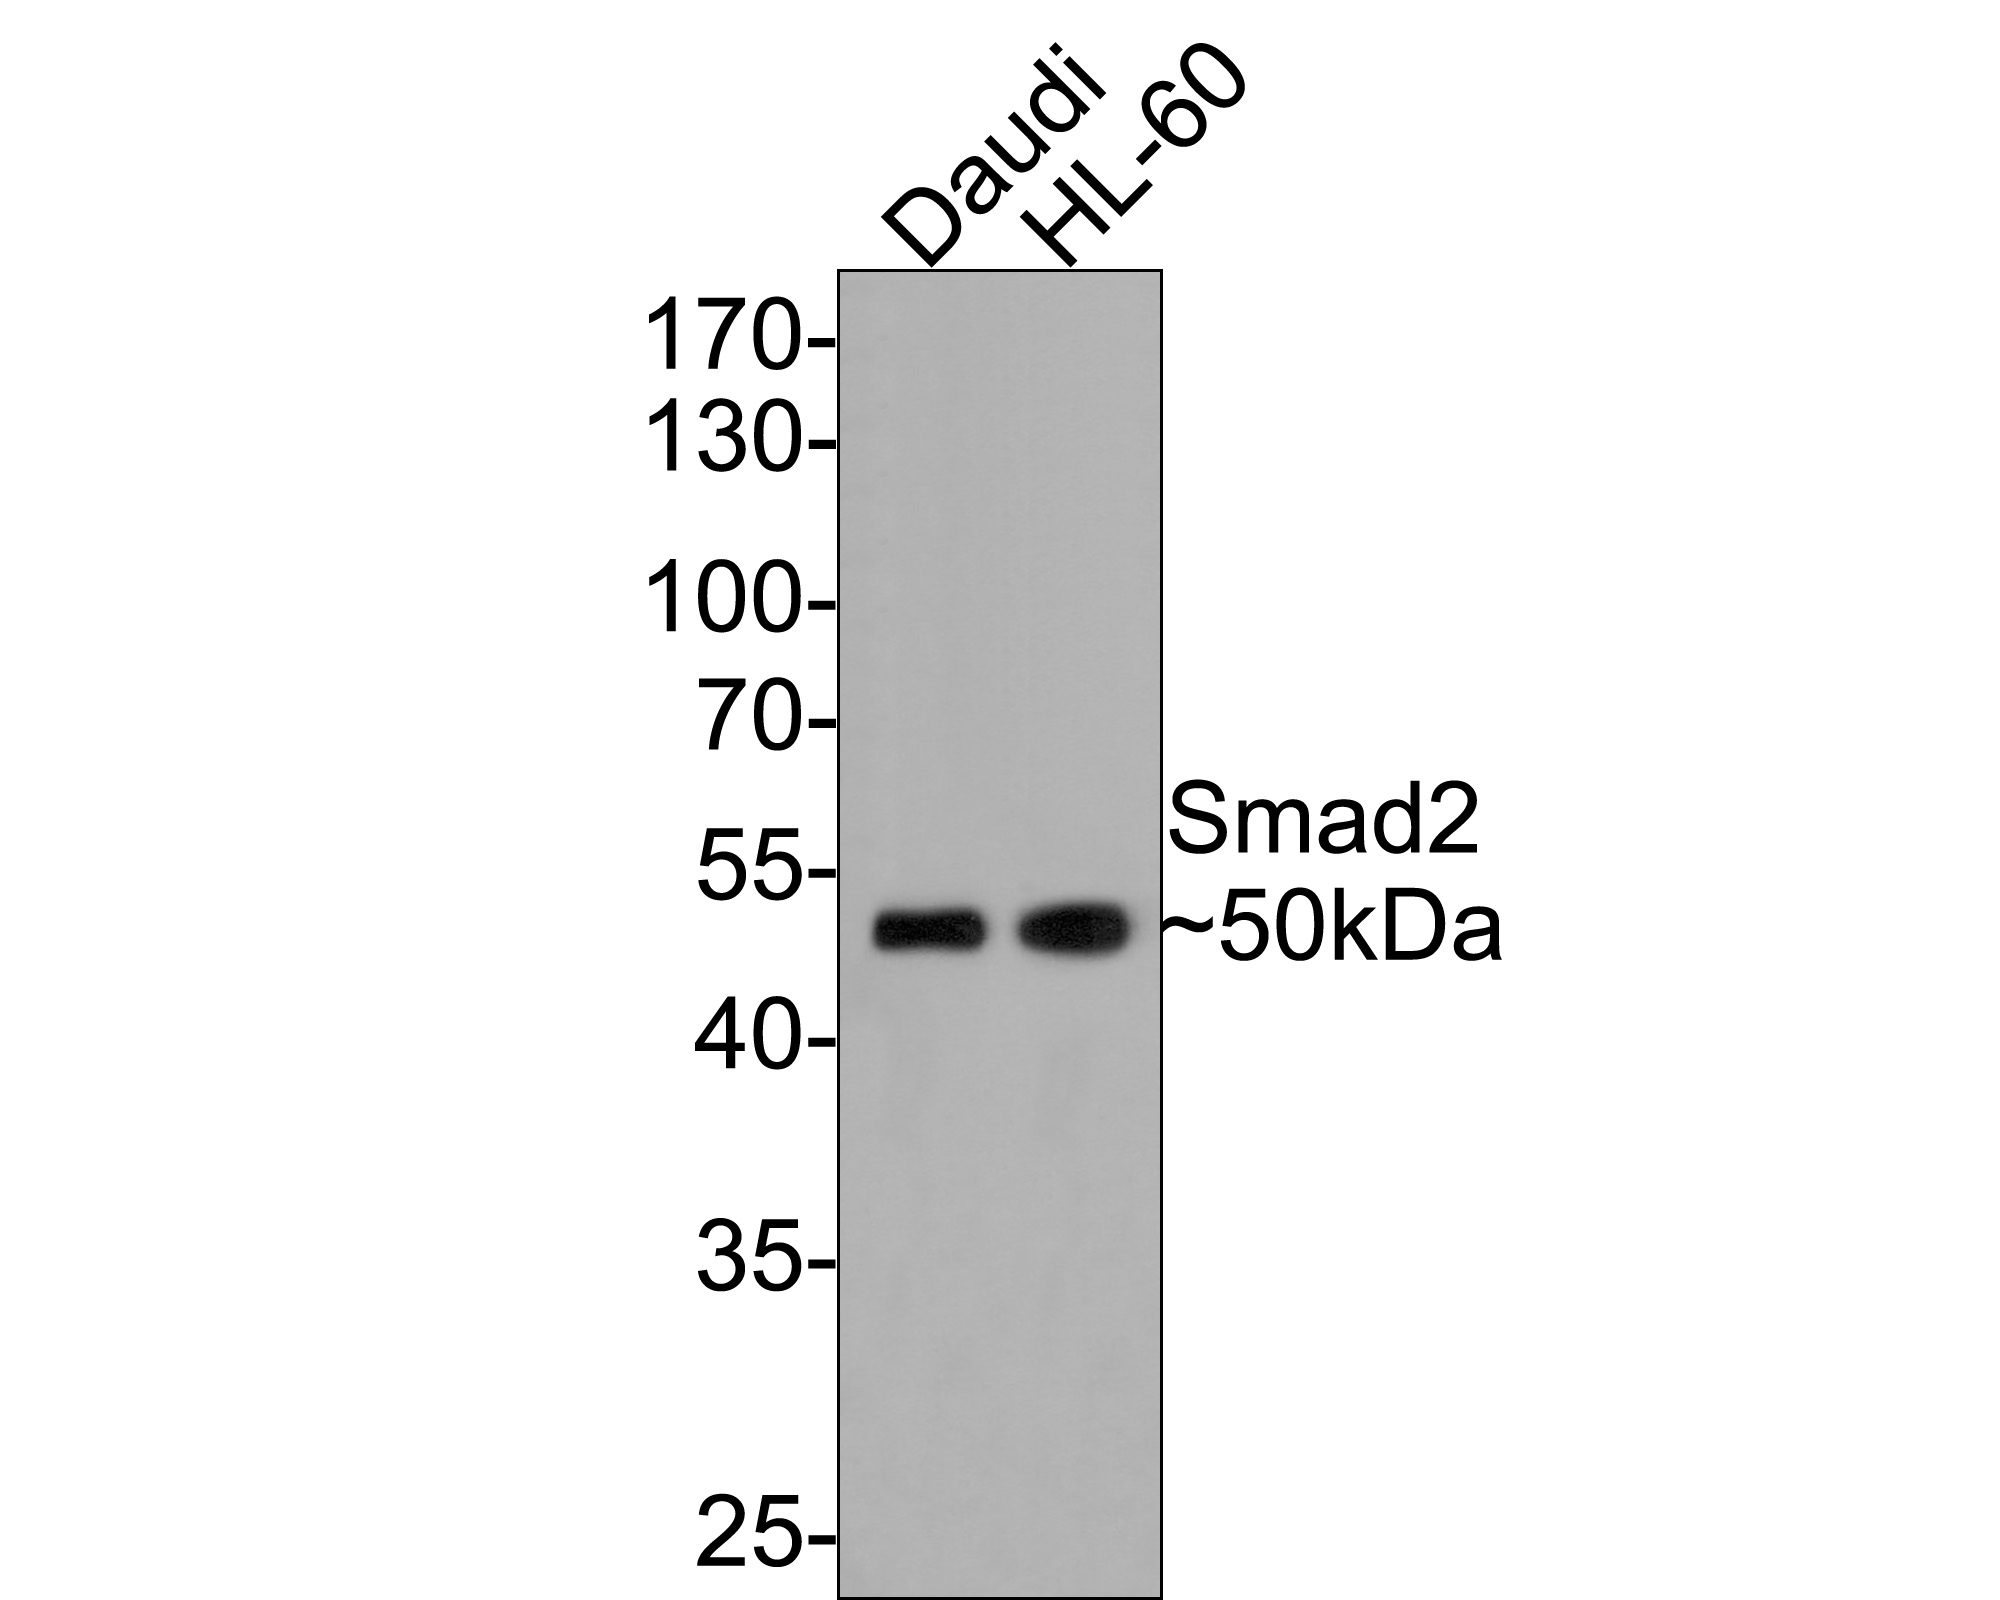 Western blot analysis of Smad2 on different lysates. Proteins were transferred to a PVDF membrane and blocked with 5% BSA in PBS for 1 hour at room temperature. The primary antibody (ET1604-22, 1/500) was used in 5% BSA at room temperature for 2 hours. Goat Anti-Rabbit IgG - HRP Secondary Antibody (HA1001) at 1:5,000 dilution was used for 1 hour at room temperature.<br />  Positive control: <br />  Lane 1: Hela cell lysate<br />  Lane 2: A431 cell lysate<br />  Lane 3: PC-12 cell lysate